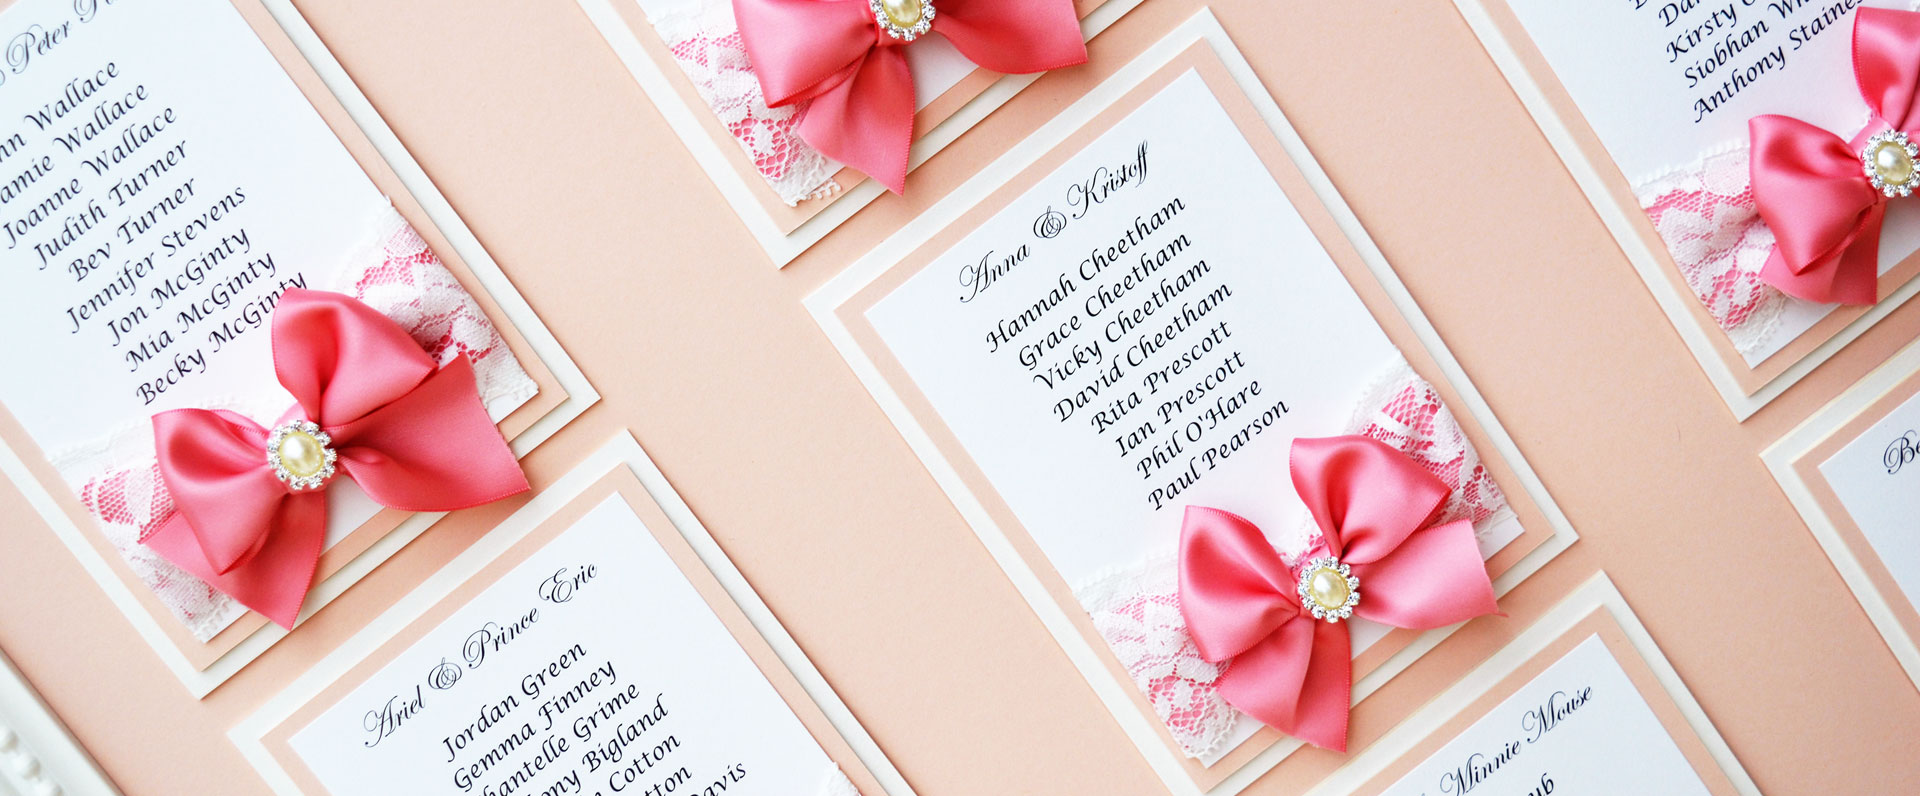 Beautiful table plan with pink satin and white lace bows, blush pink background and a pearl embellishment